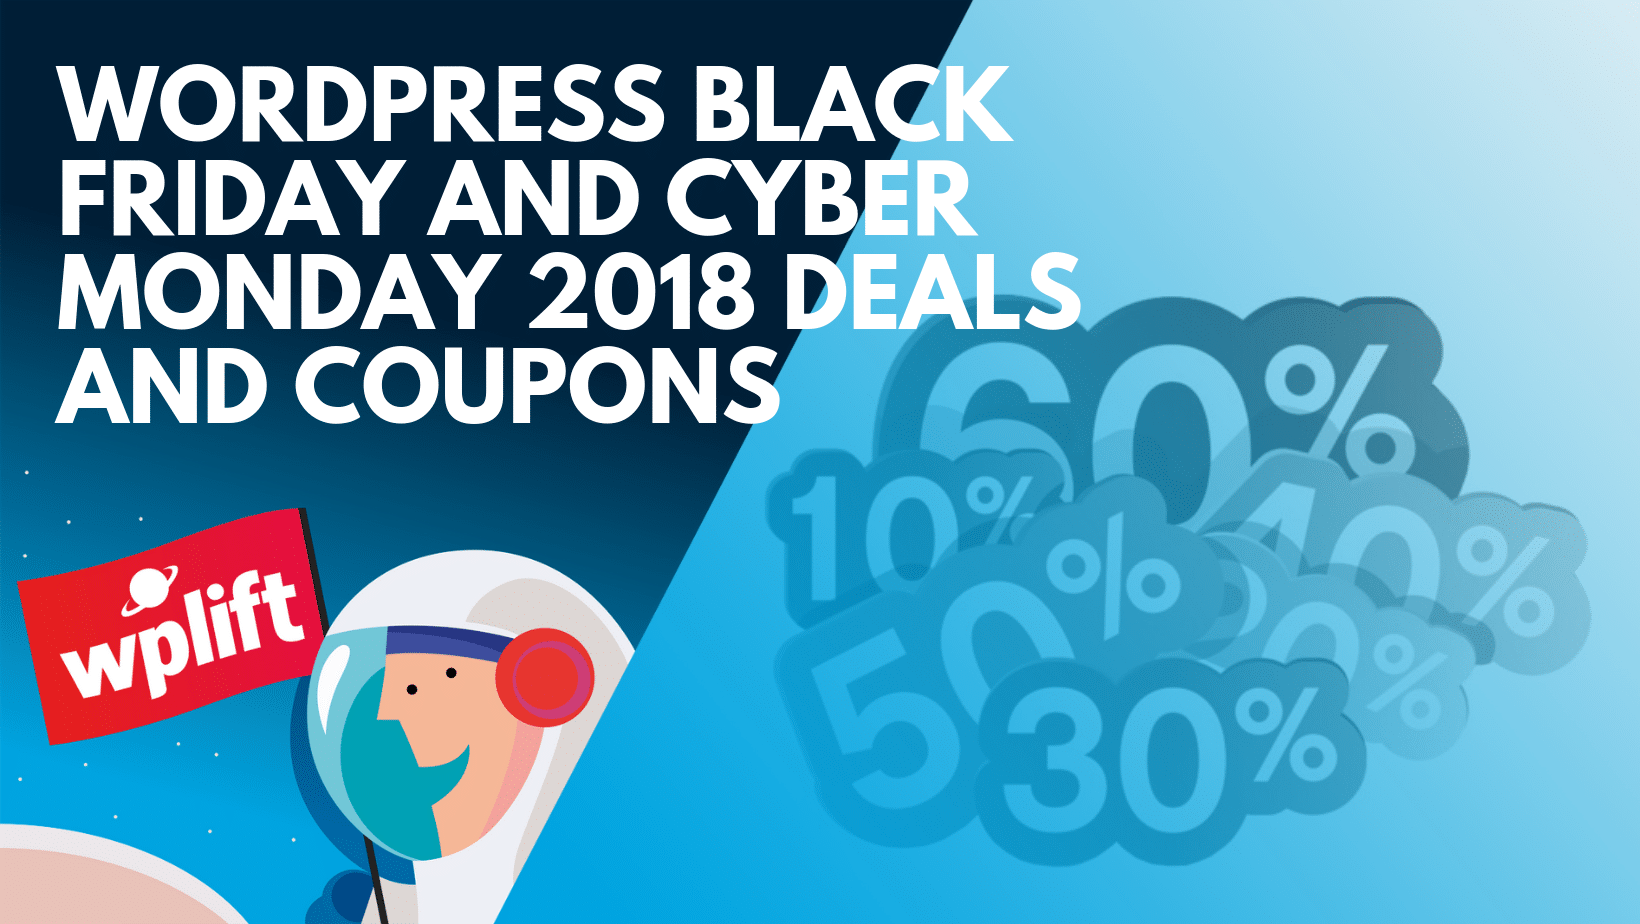 WordPress Black Friday And Cyber Monday 2018 Deals And Coupons